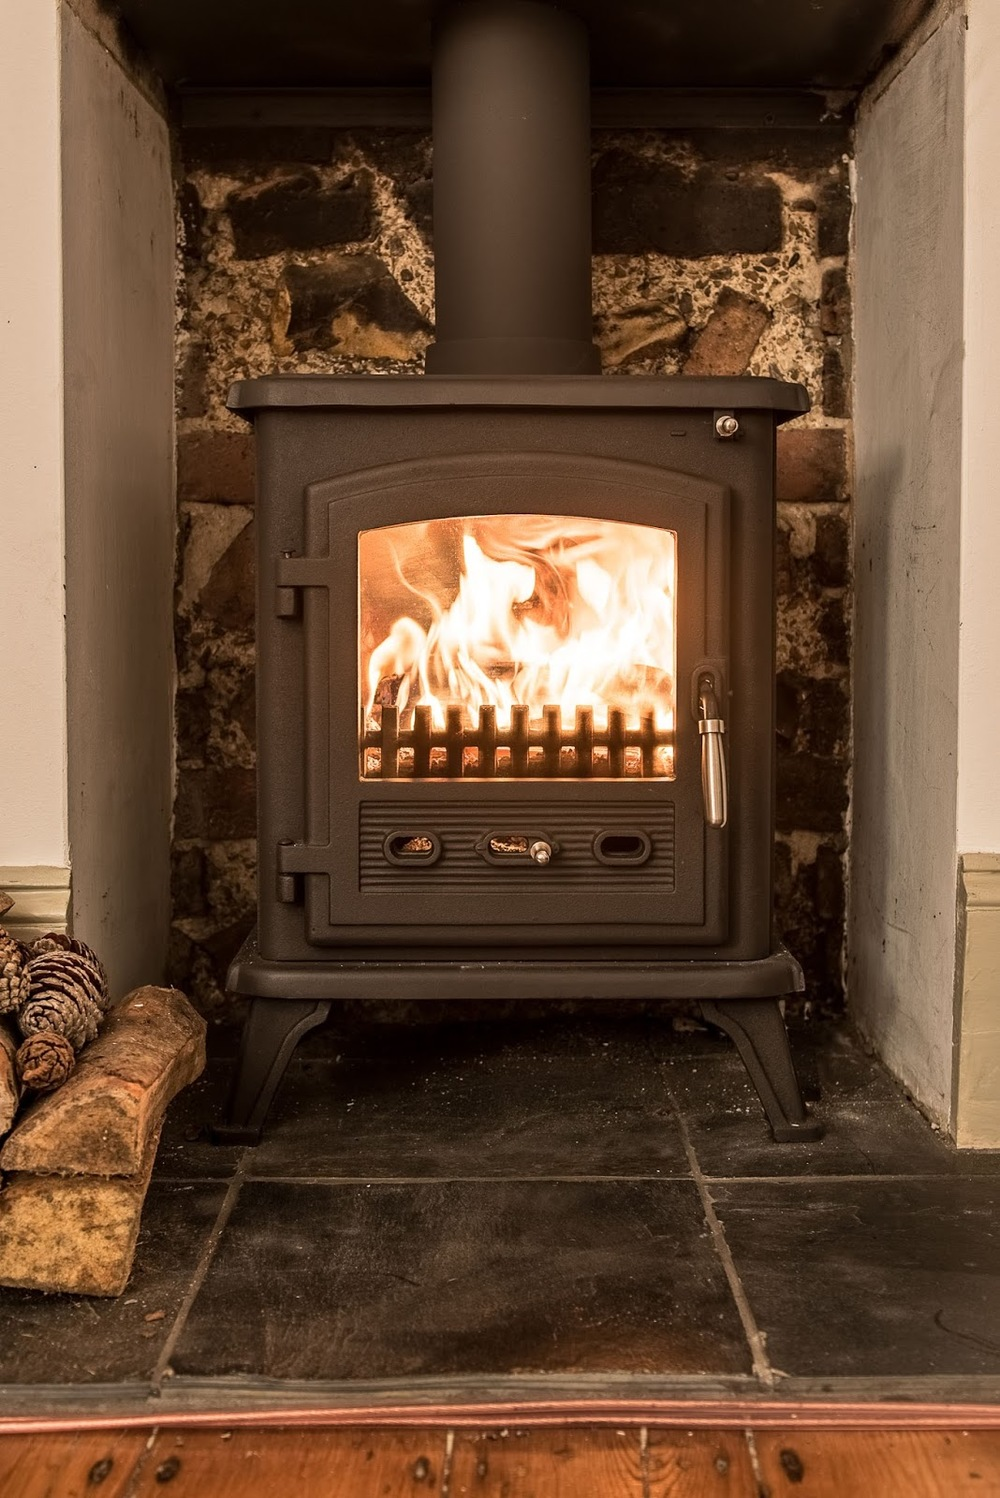 Getting a wood burning stove fitted: Before + After photos